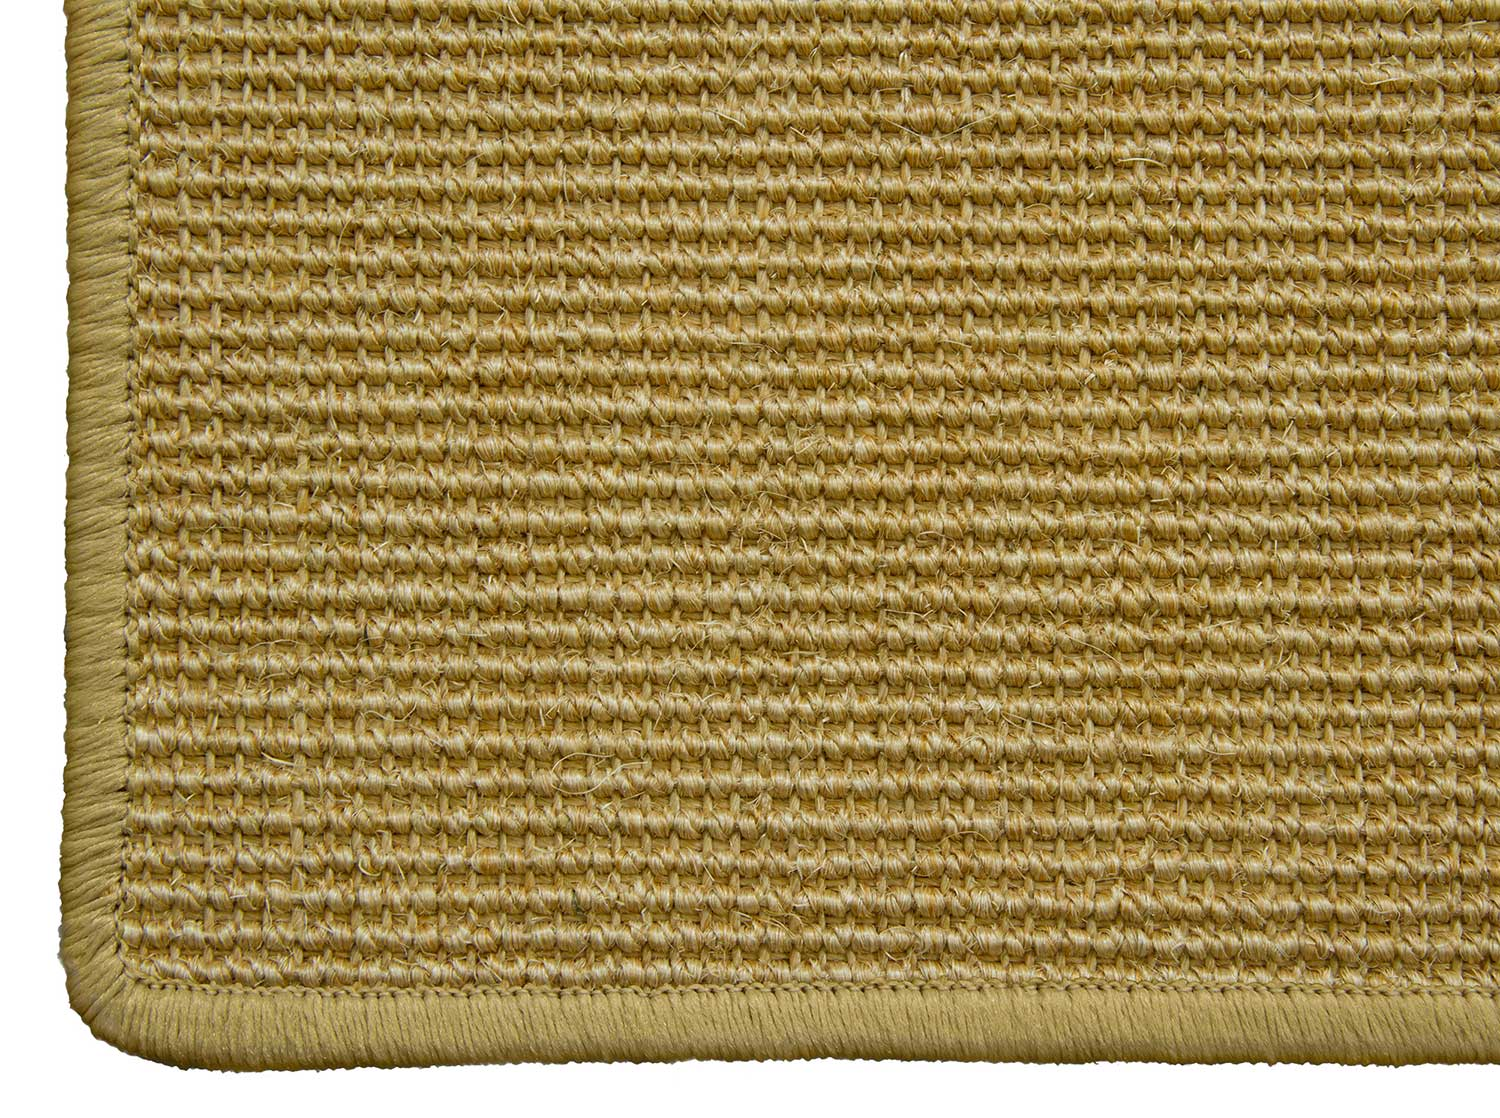 sisal teppich 300x300 perfect miroo sam miroo pia with sisal teppich 300x300 good in u outdoor. Black Bedroom Furniture Sets. Home Design Ideas